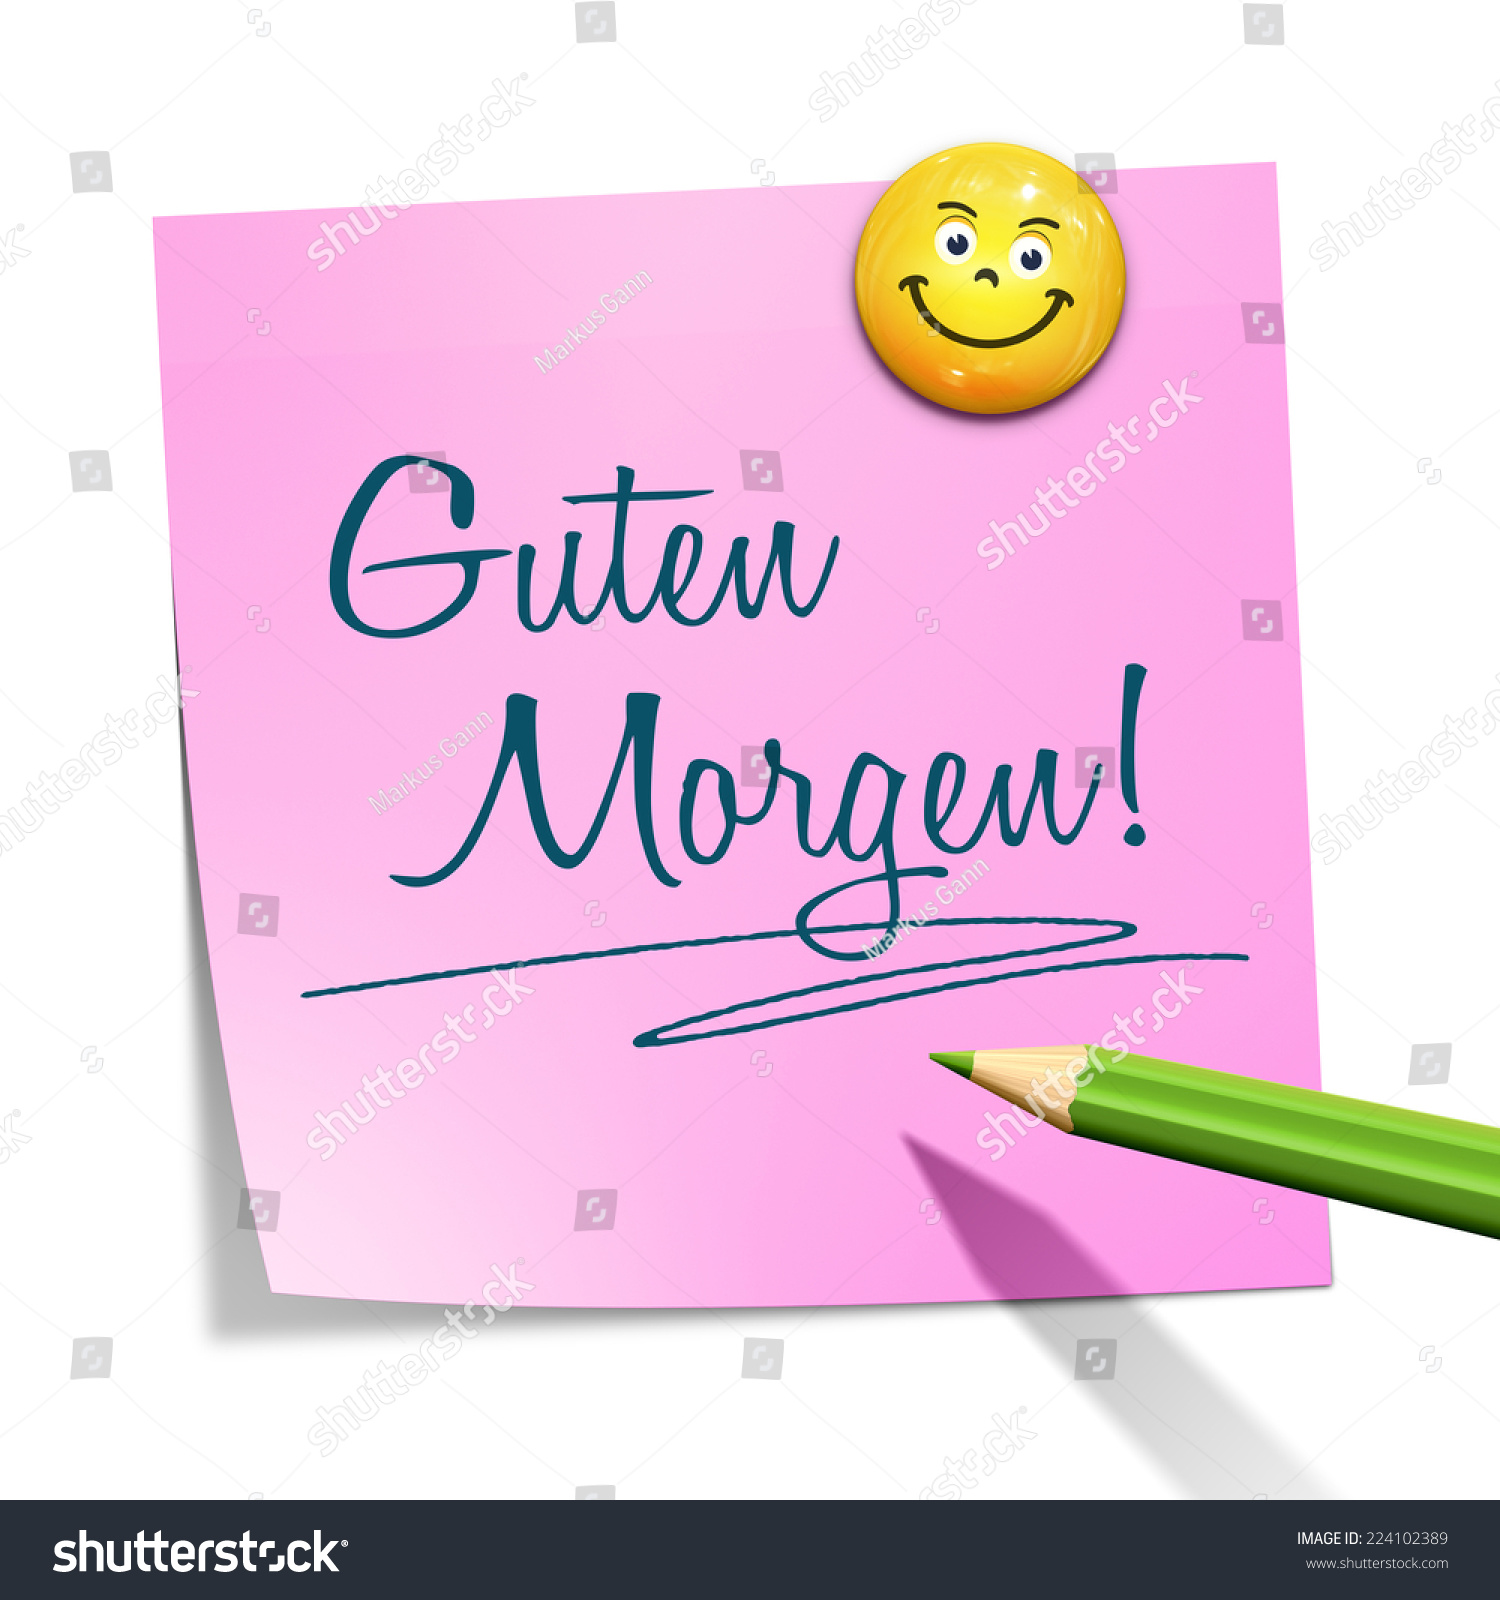 Good Morning Message In German : An image of a sticky paper with the message good morning